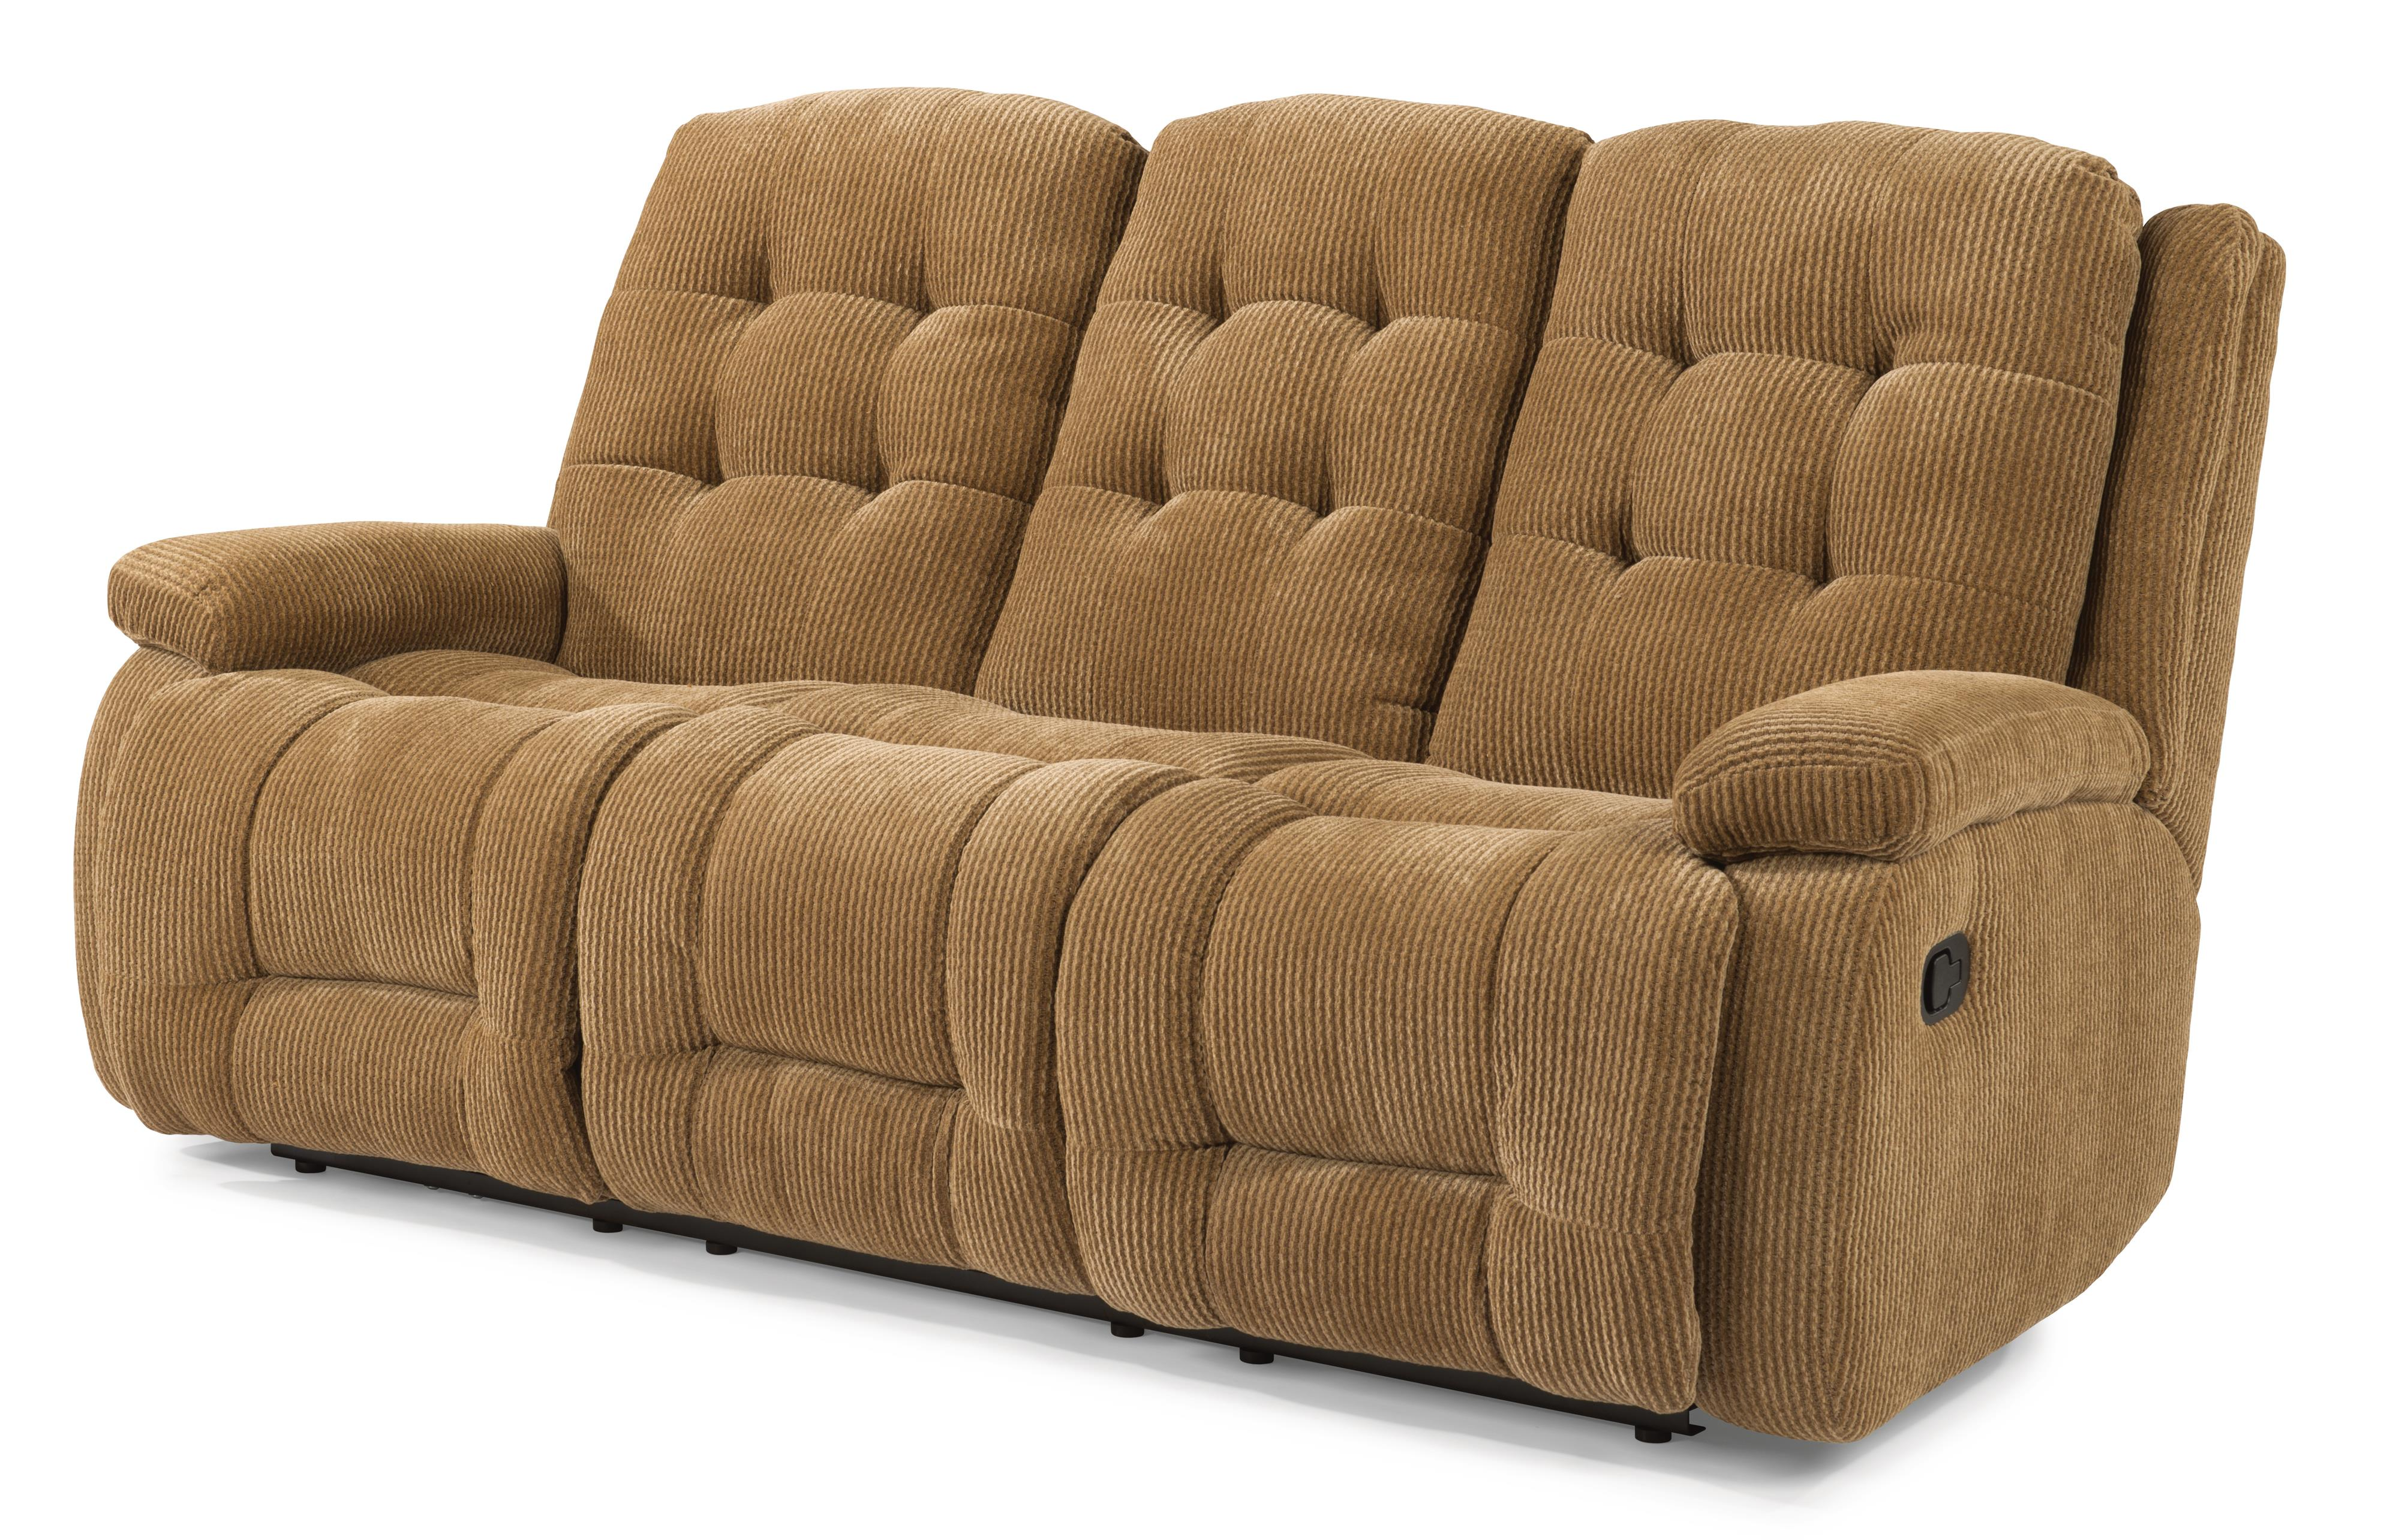 Flexsteel Paxton Reclining Sofa - Item Number: 4882-62-811-90